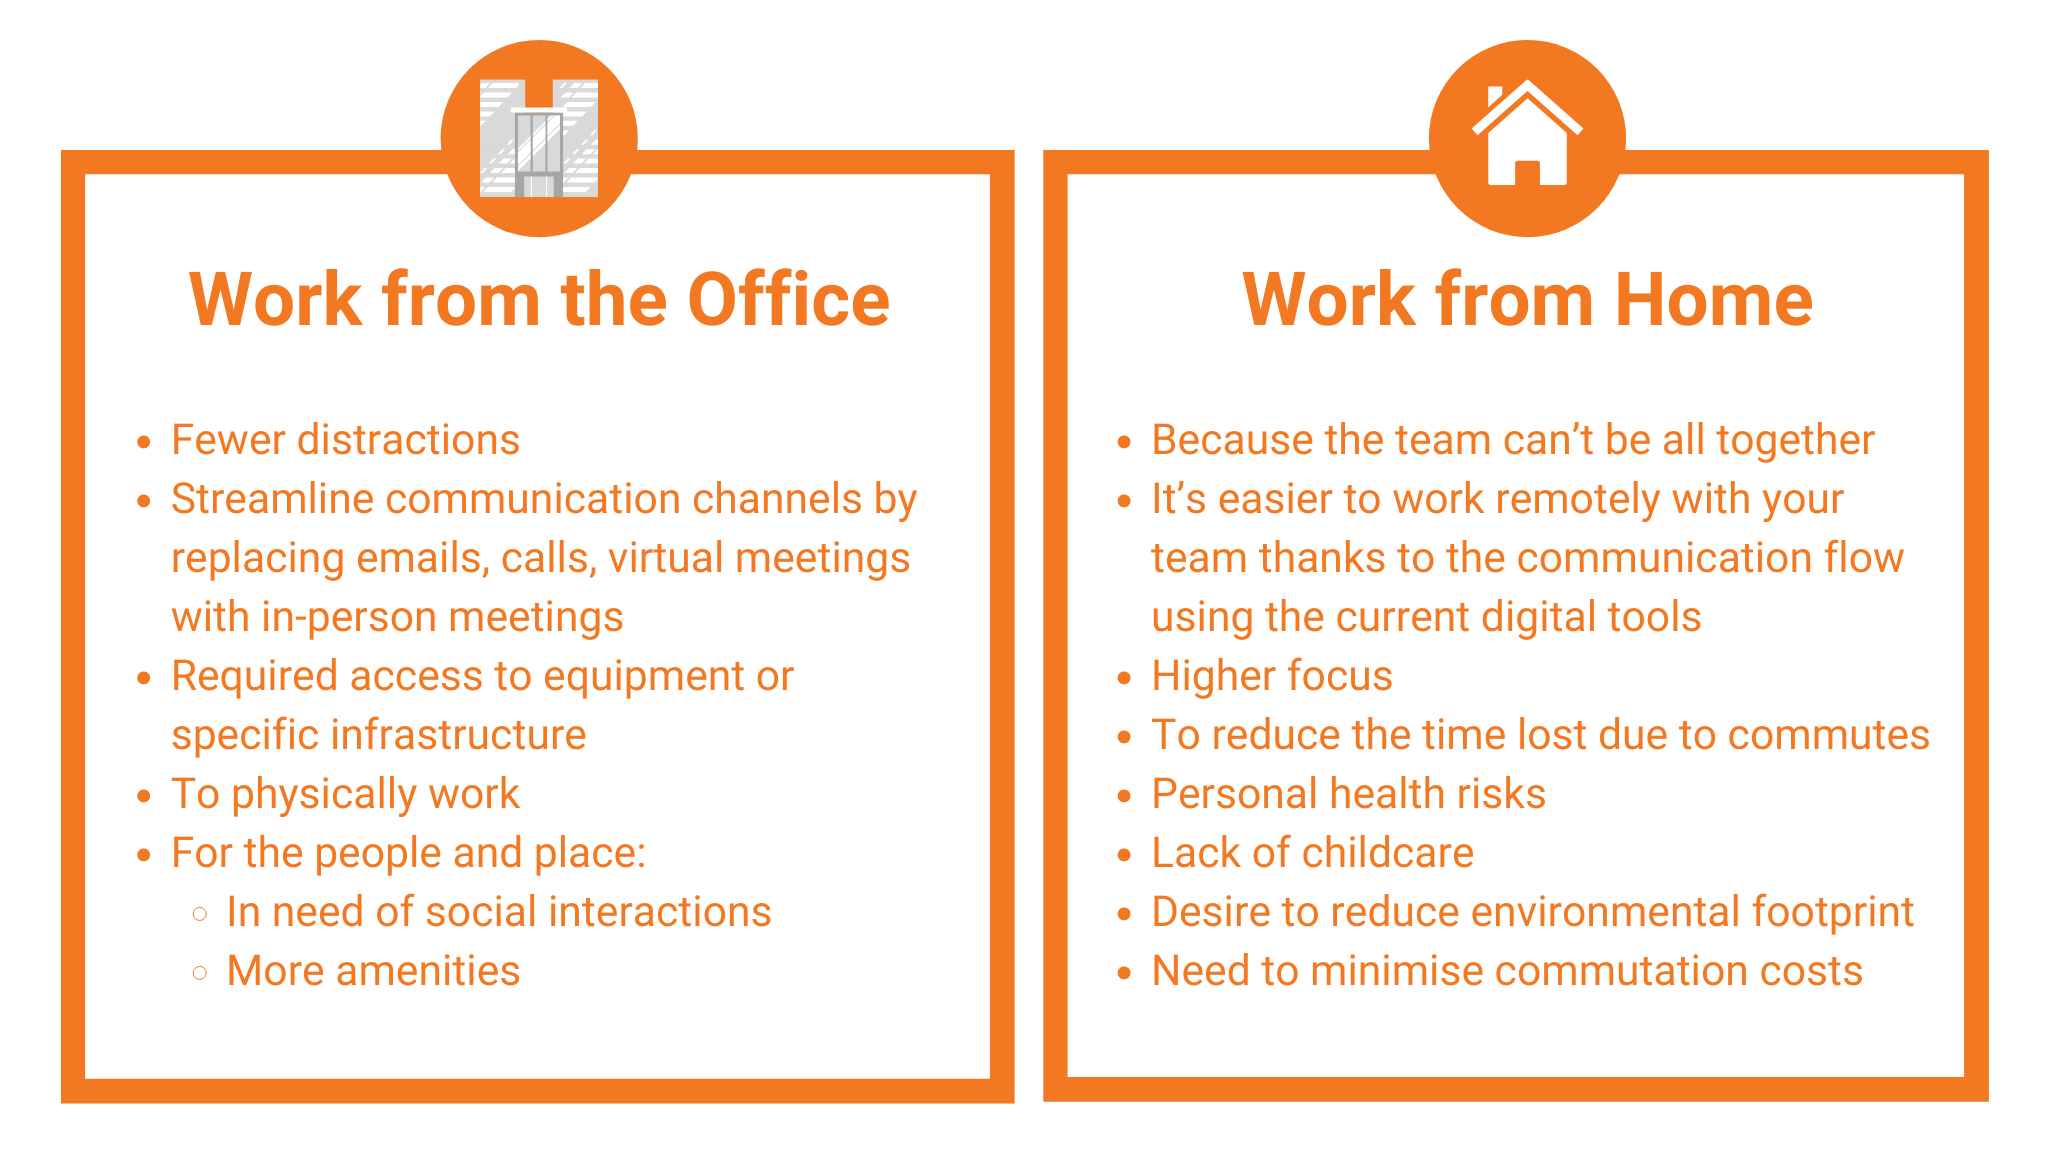 Work from the office and work from home - reopening offices